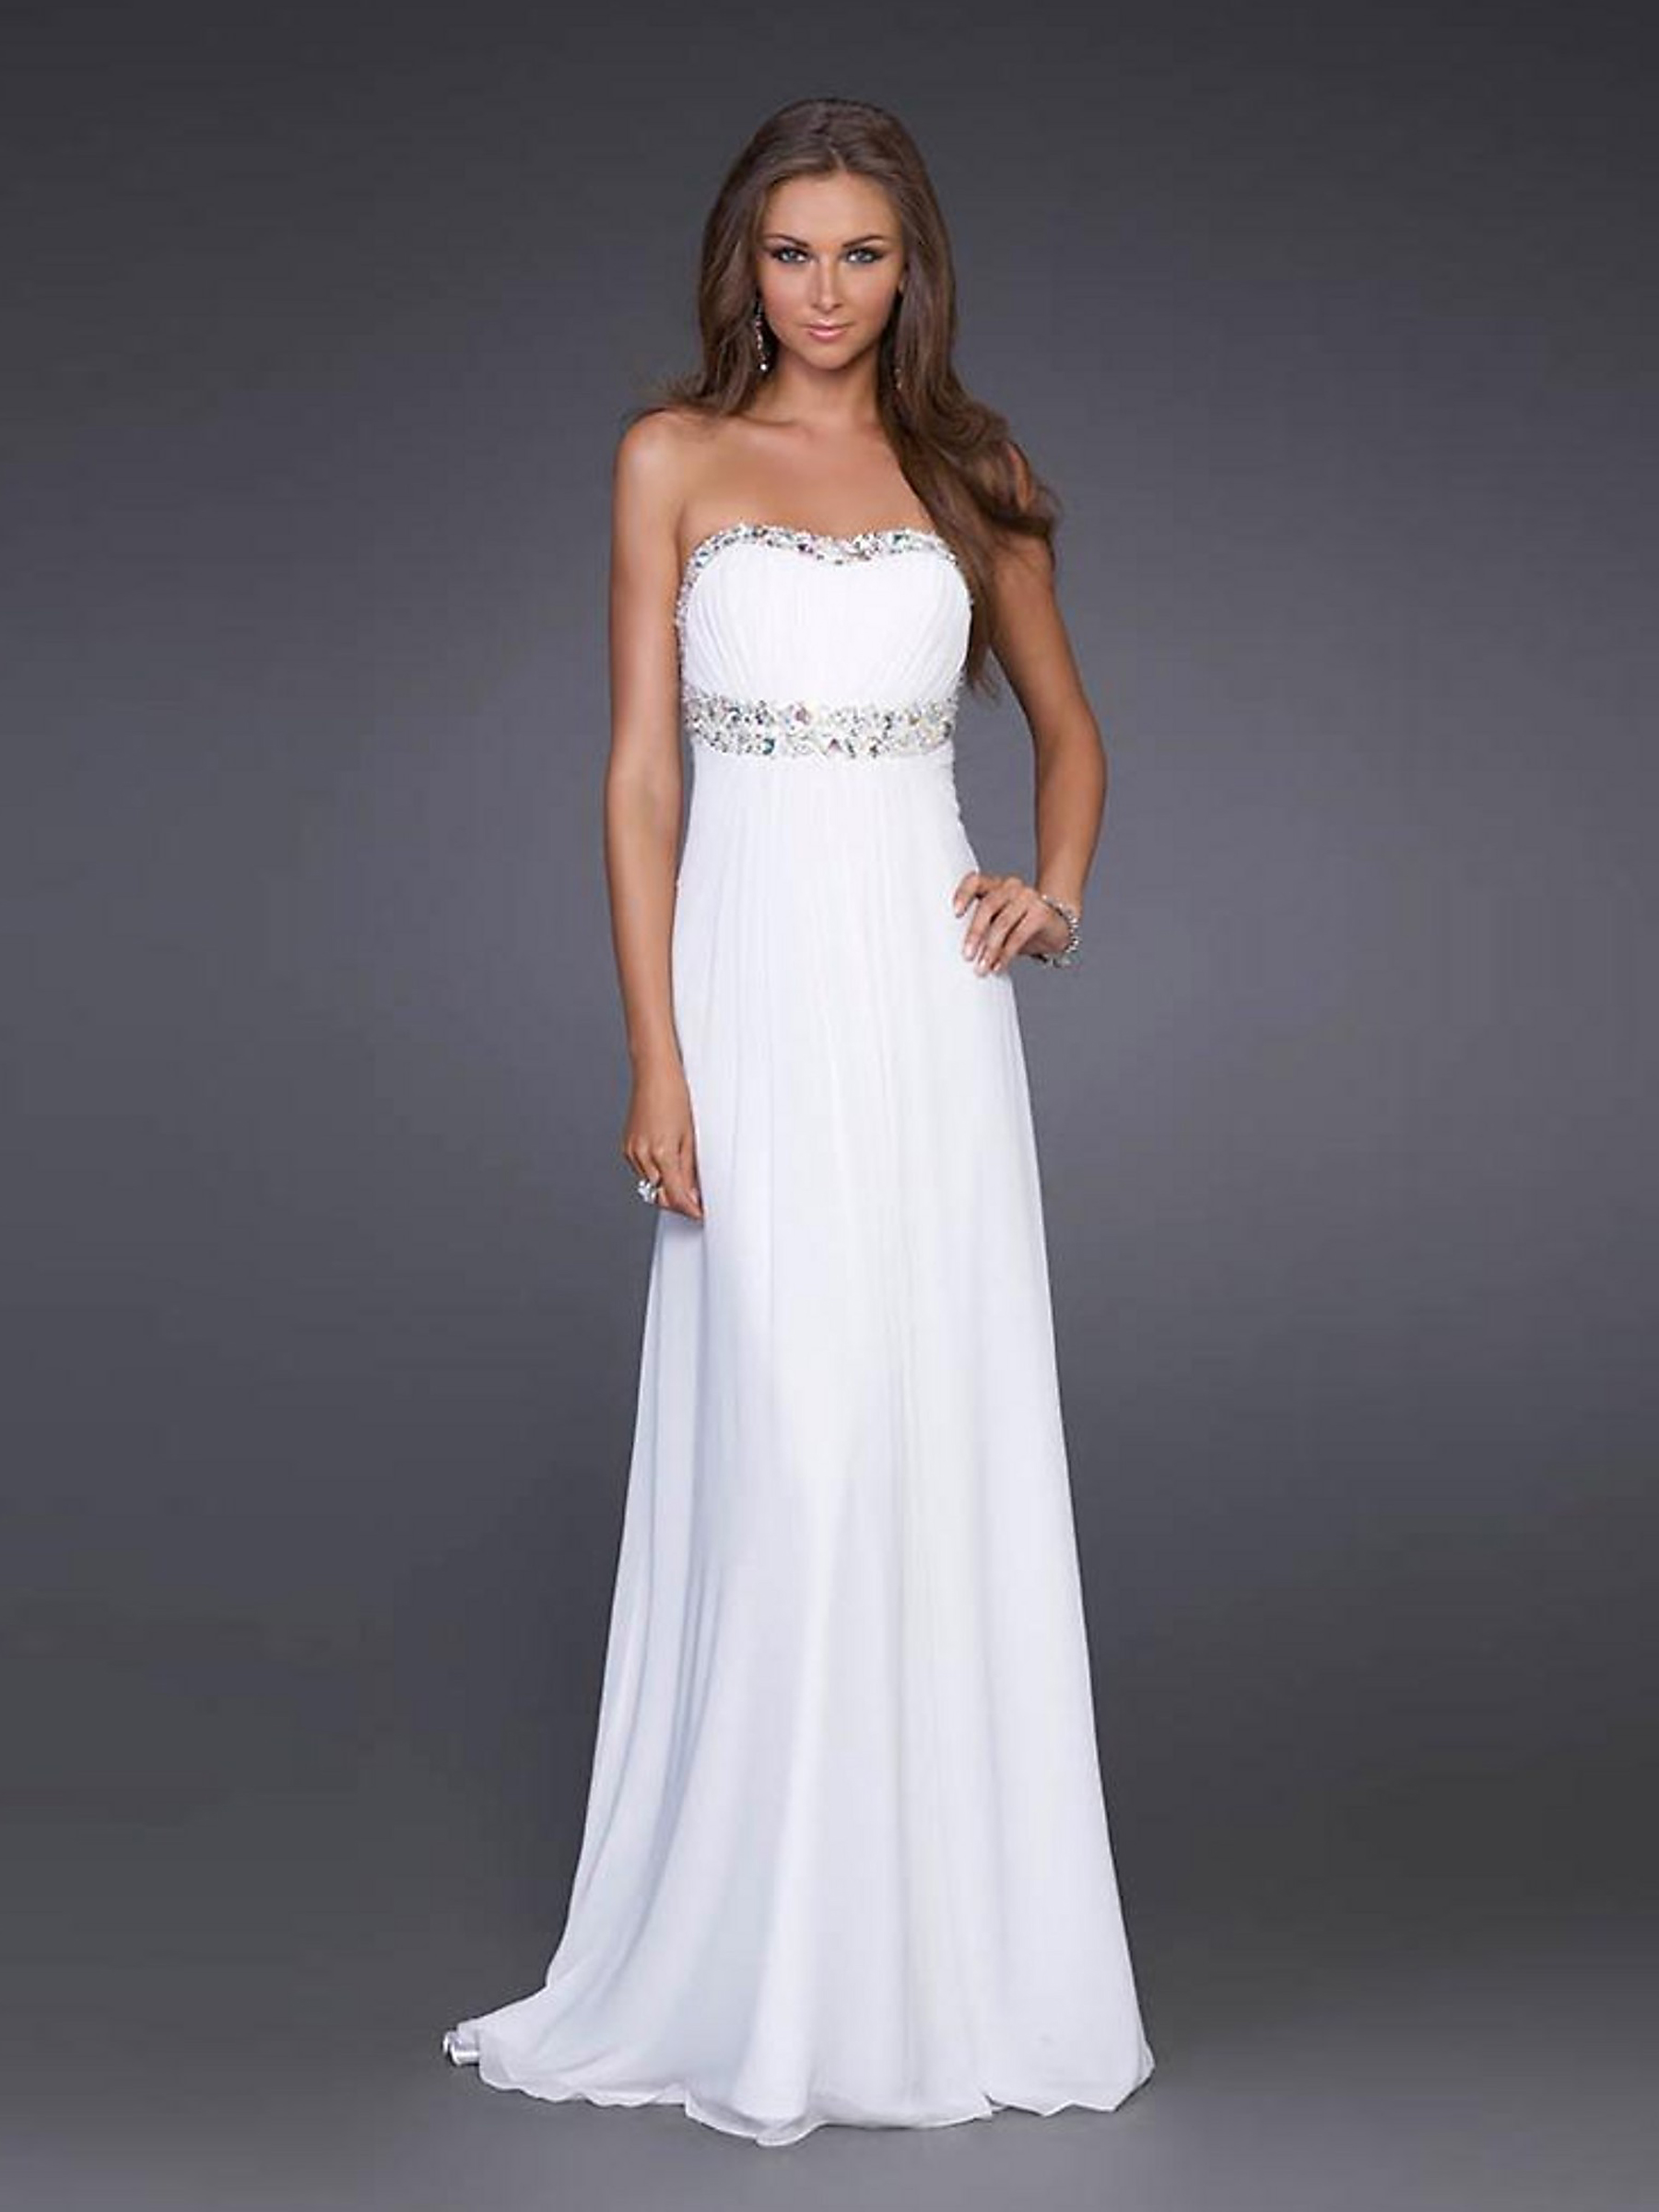 Original size of image 547619 for Floor length gowns